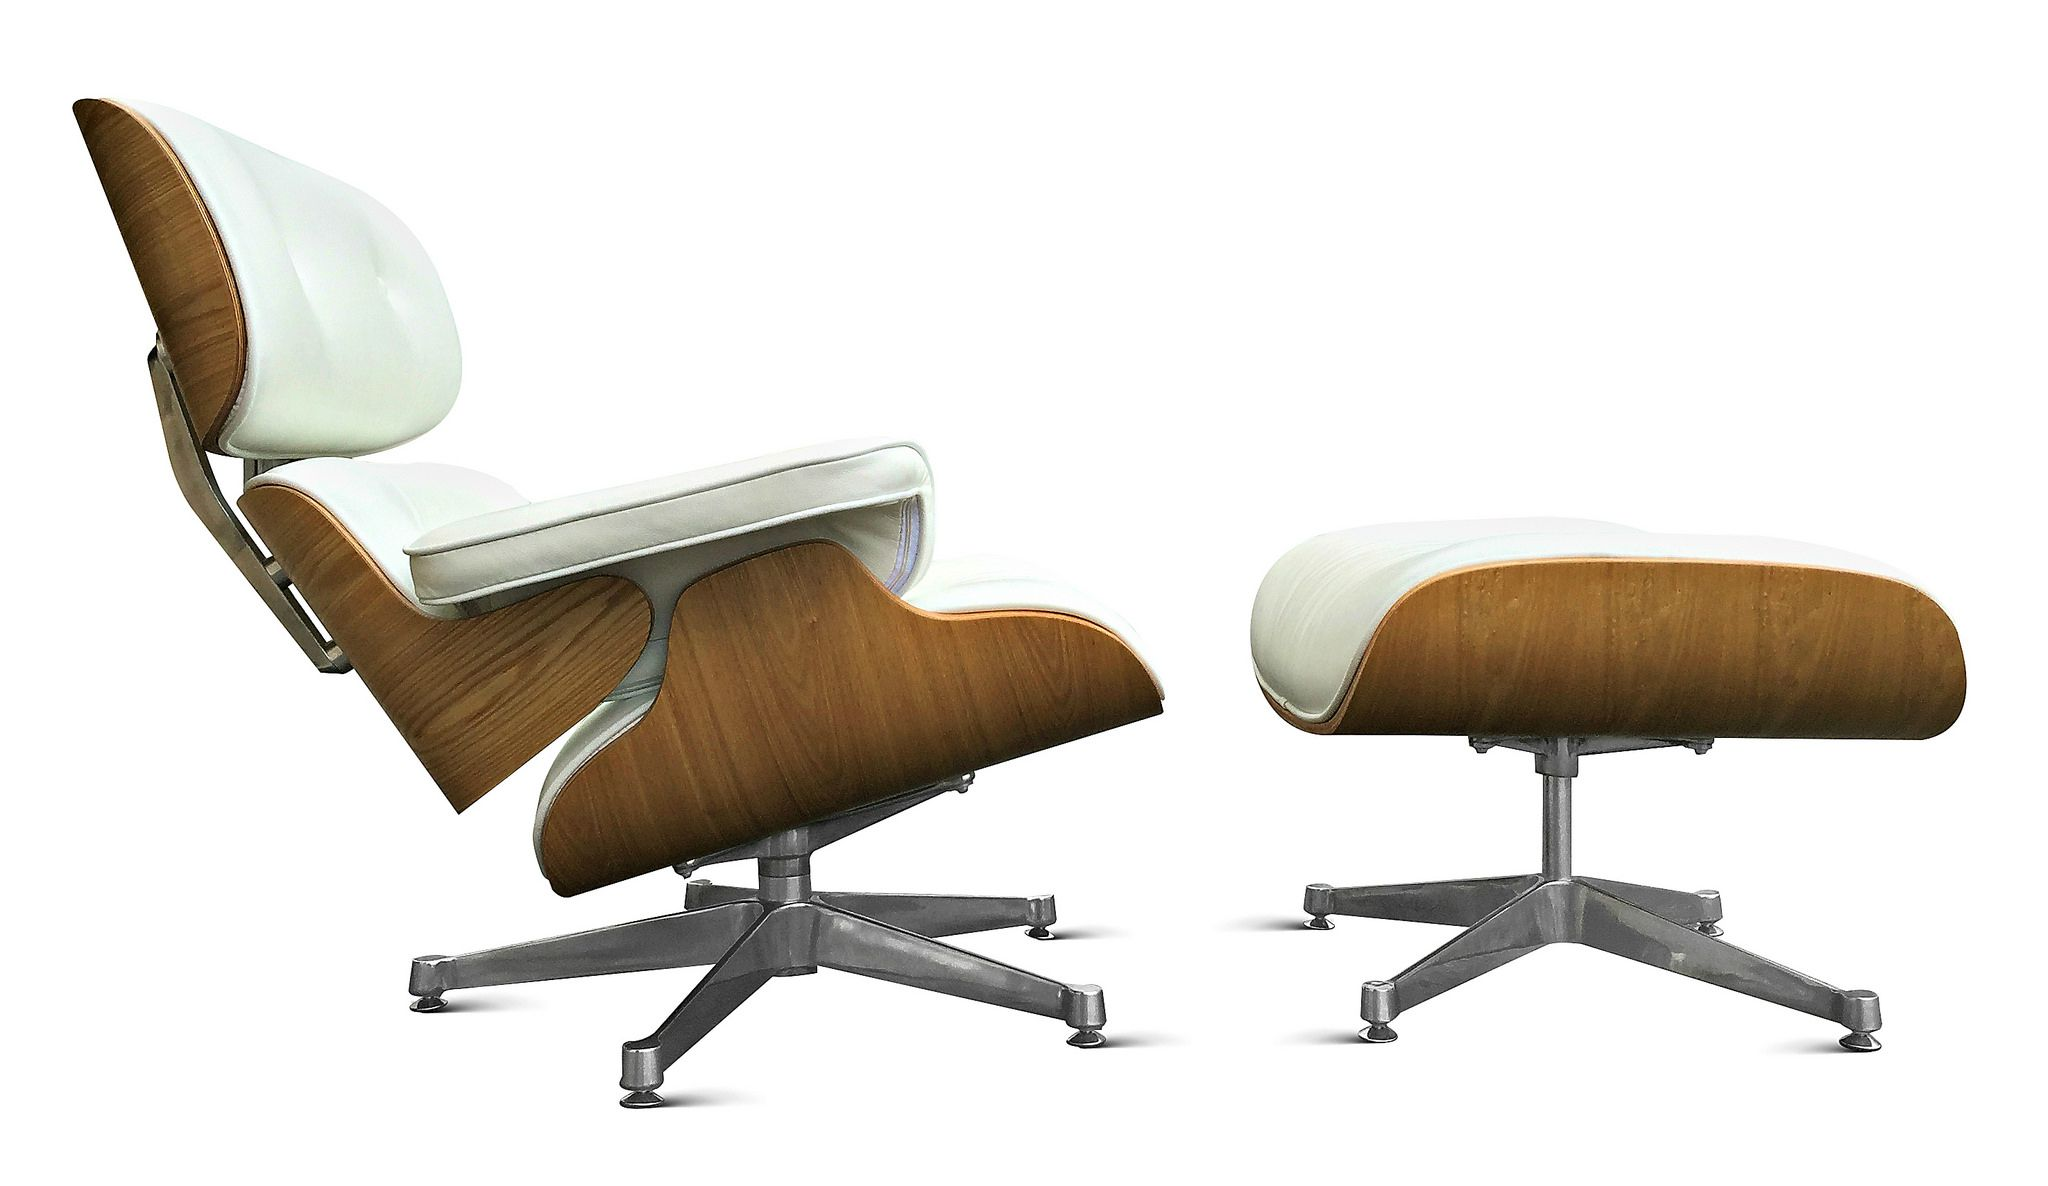 Miraculous How To Identify A Genuine Eames Lounge Chair Caraccident5 Cool Chair Designs And Ideas Caraccident5Info